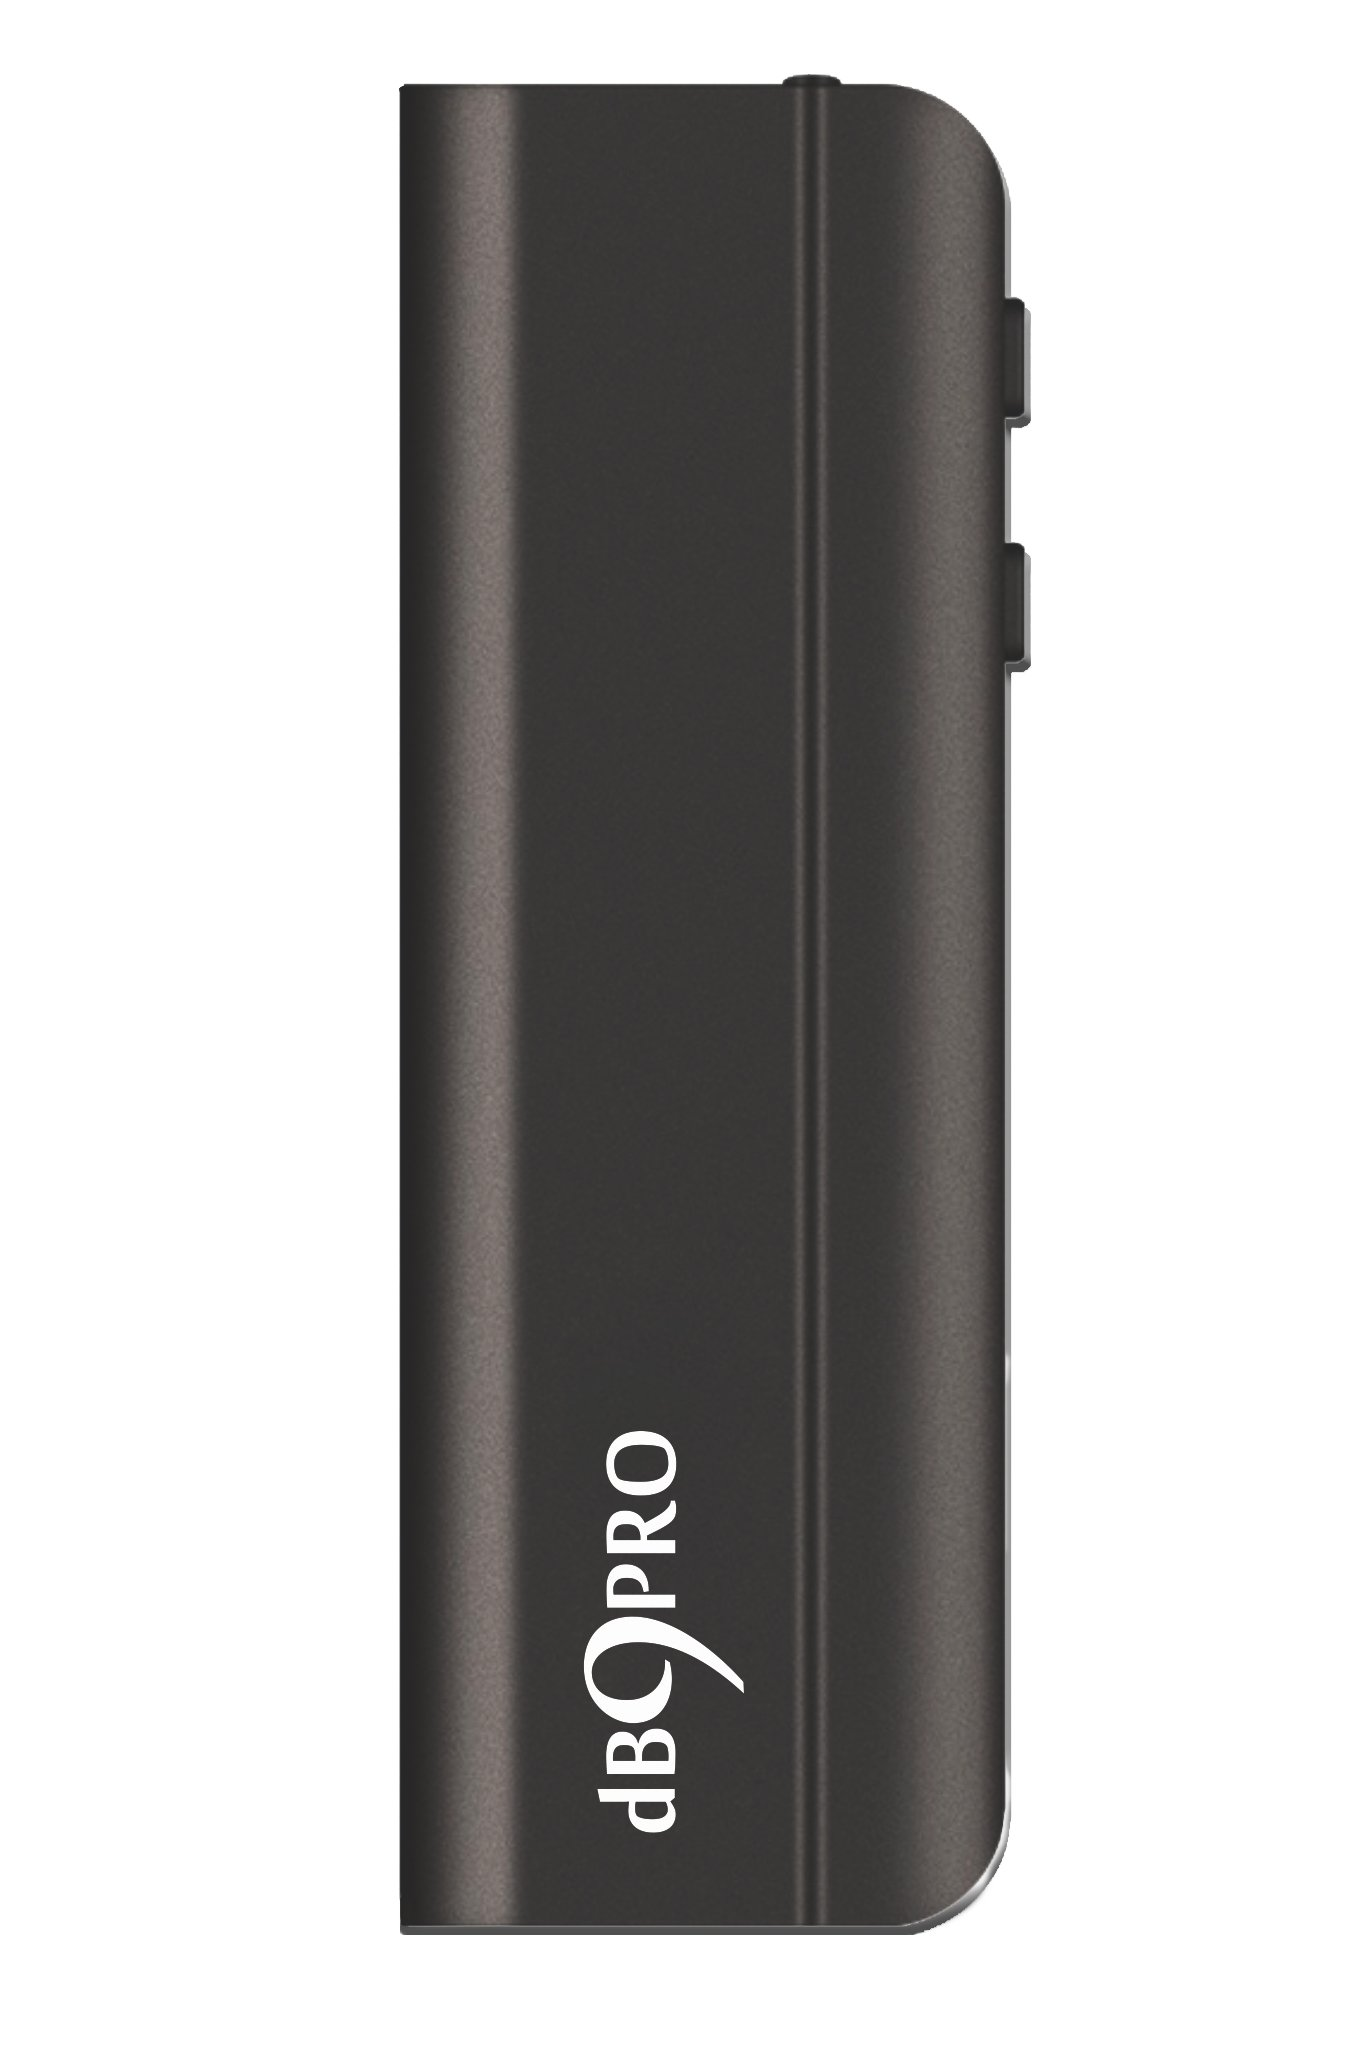 dB9PRO Voice Recorder with MP3 Player - Mini Recorder for Lectures with Clip - Clear Sound Dictaphone - 8GB, 96 Hrs Storage, 192 kbps, Battery 20-24 hrs Capture 100% of What You Hear!